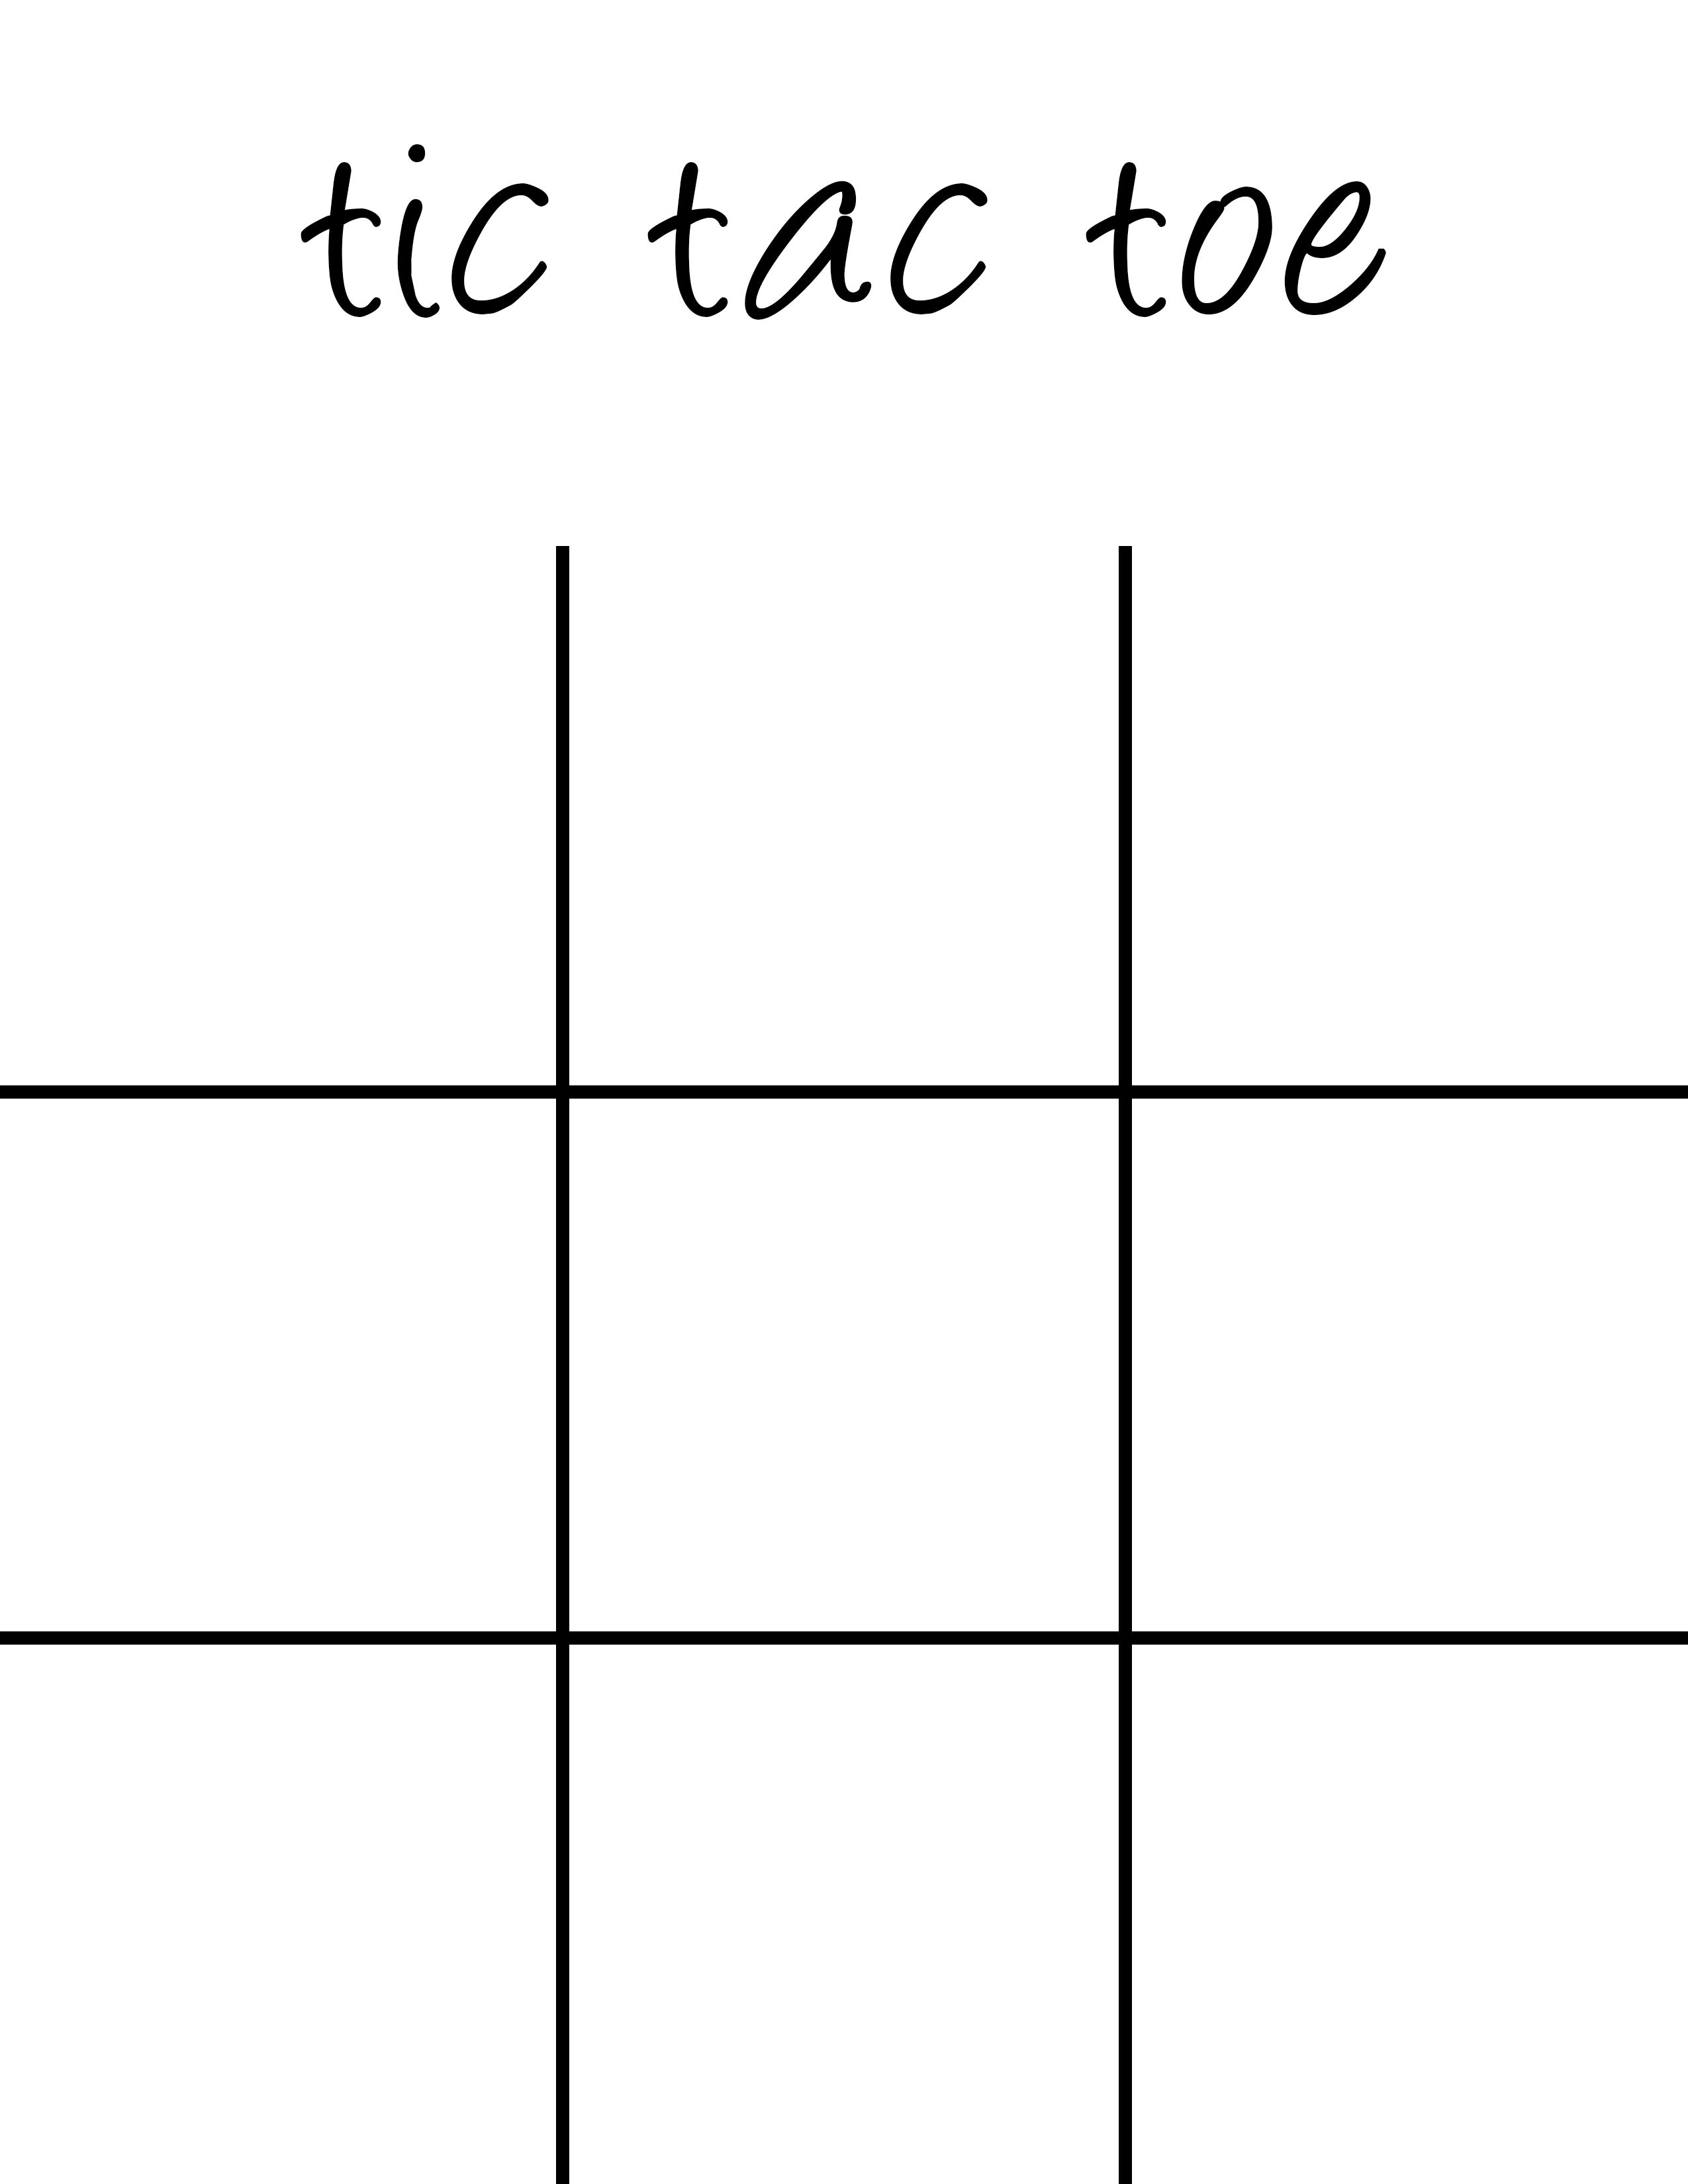 Free Printable Tic Tac Toe Board That Are Critical